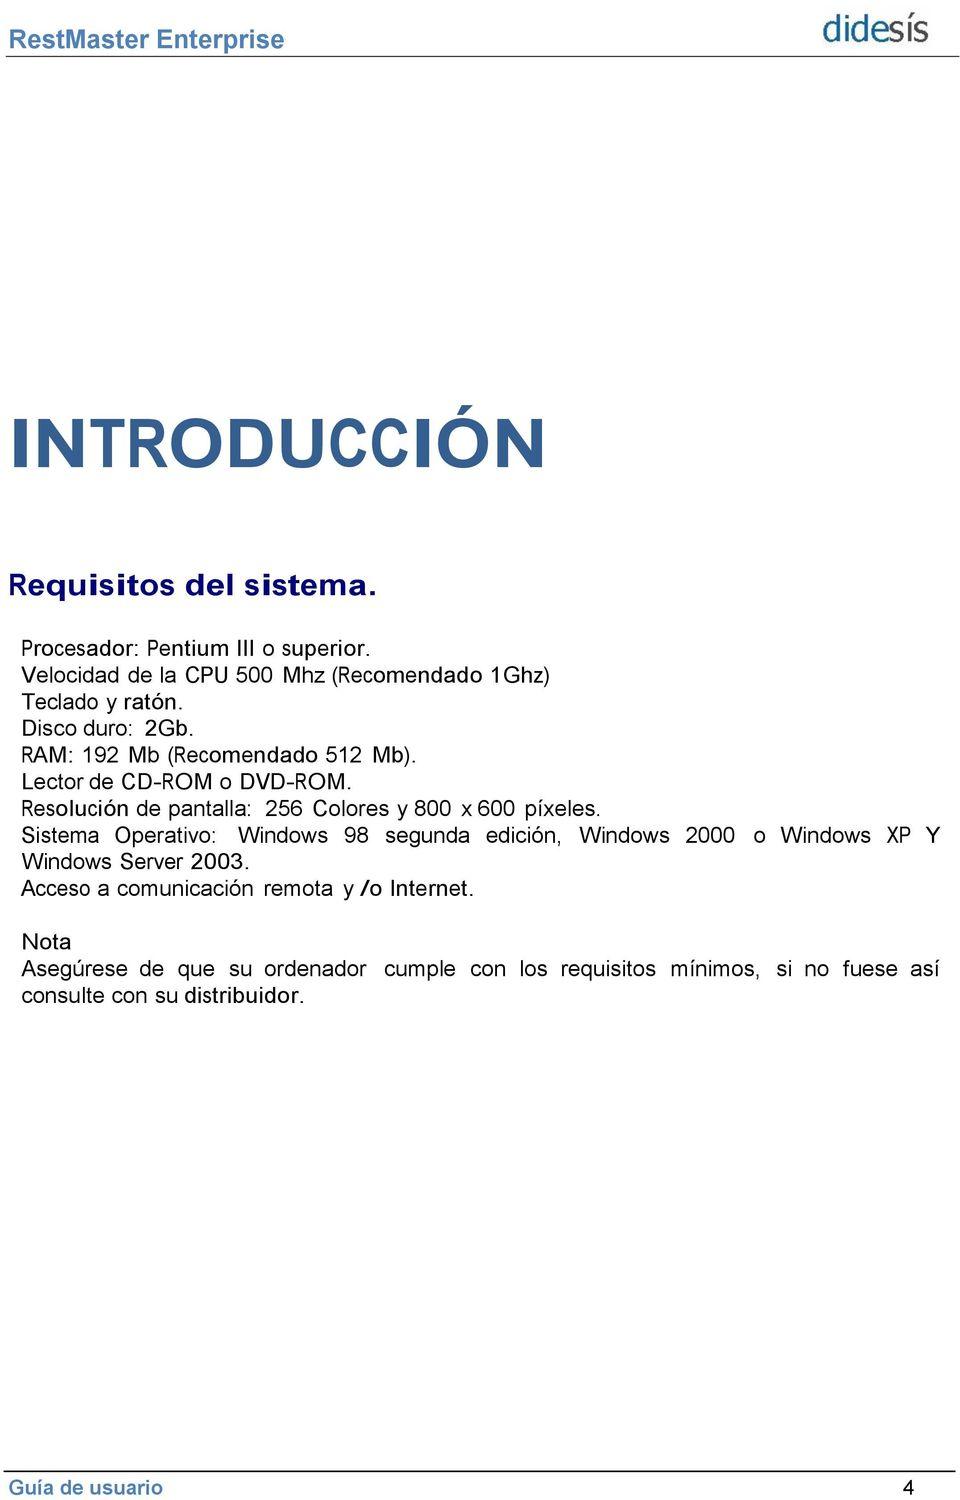 Sistema Operativo: Windows 98 segunda edición, Windows 2000 o Windows XP Y Windows Server 2003.